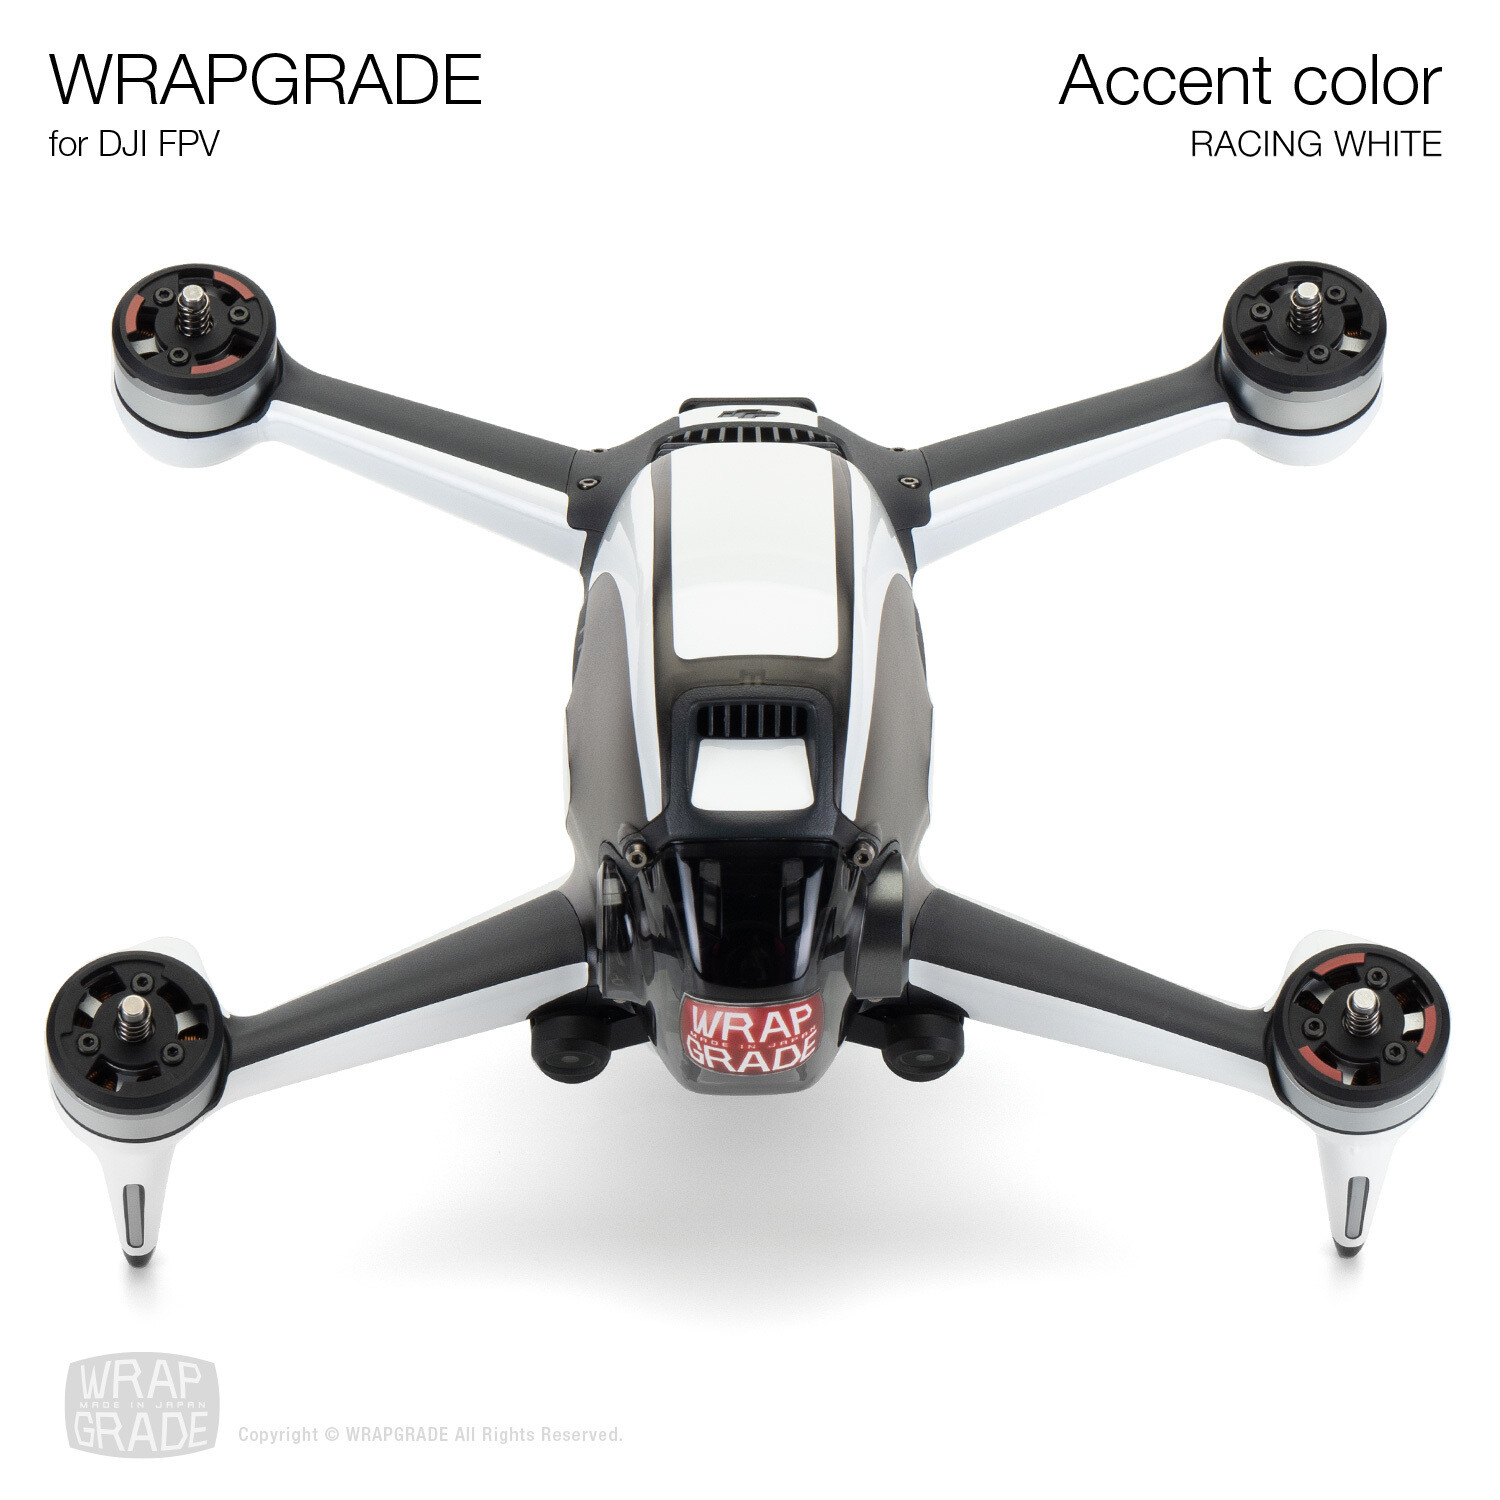 WRAPGRADE for DJI FPV   Accent color (RACING WHITE)